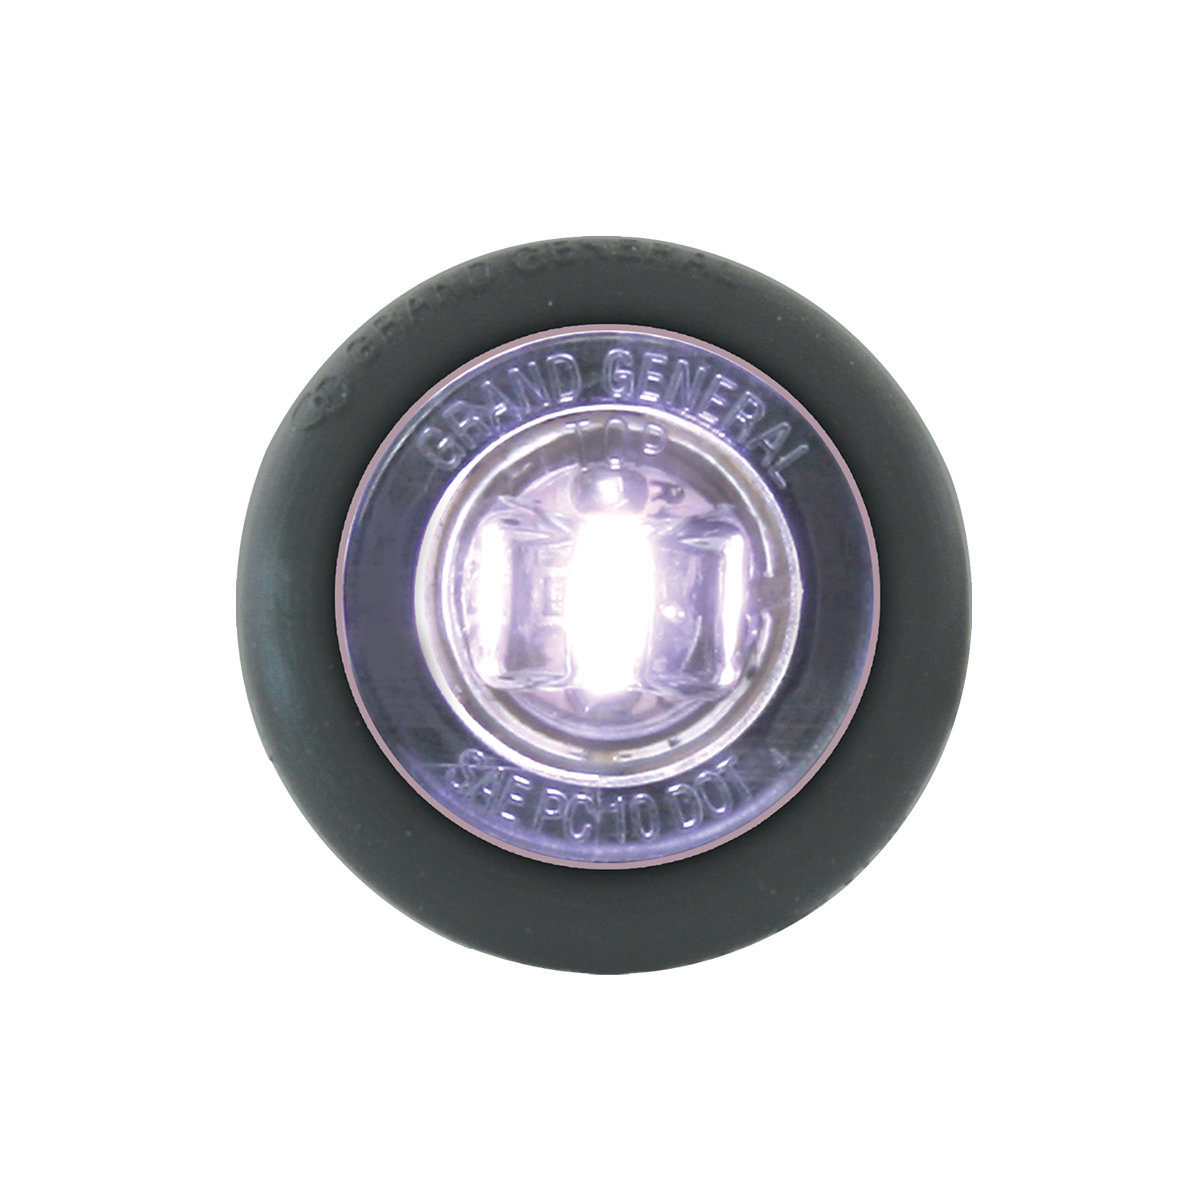 "75204 1-1/4"" Dia. Dual Function LED Light with Grommet"